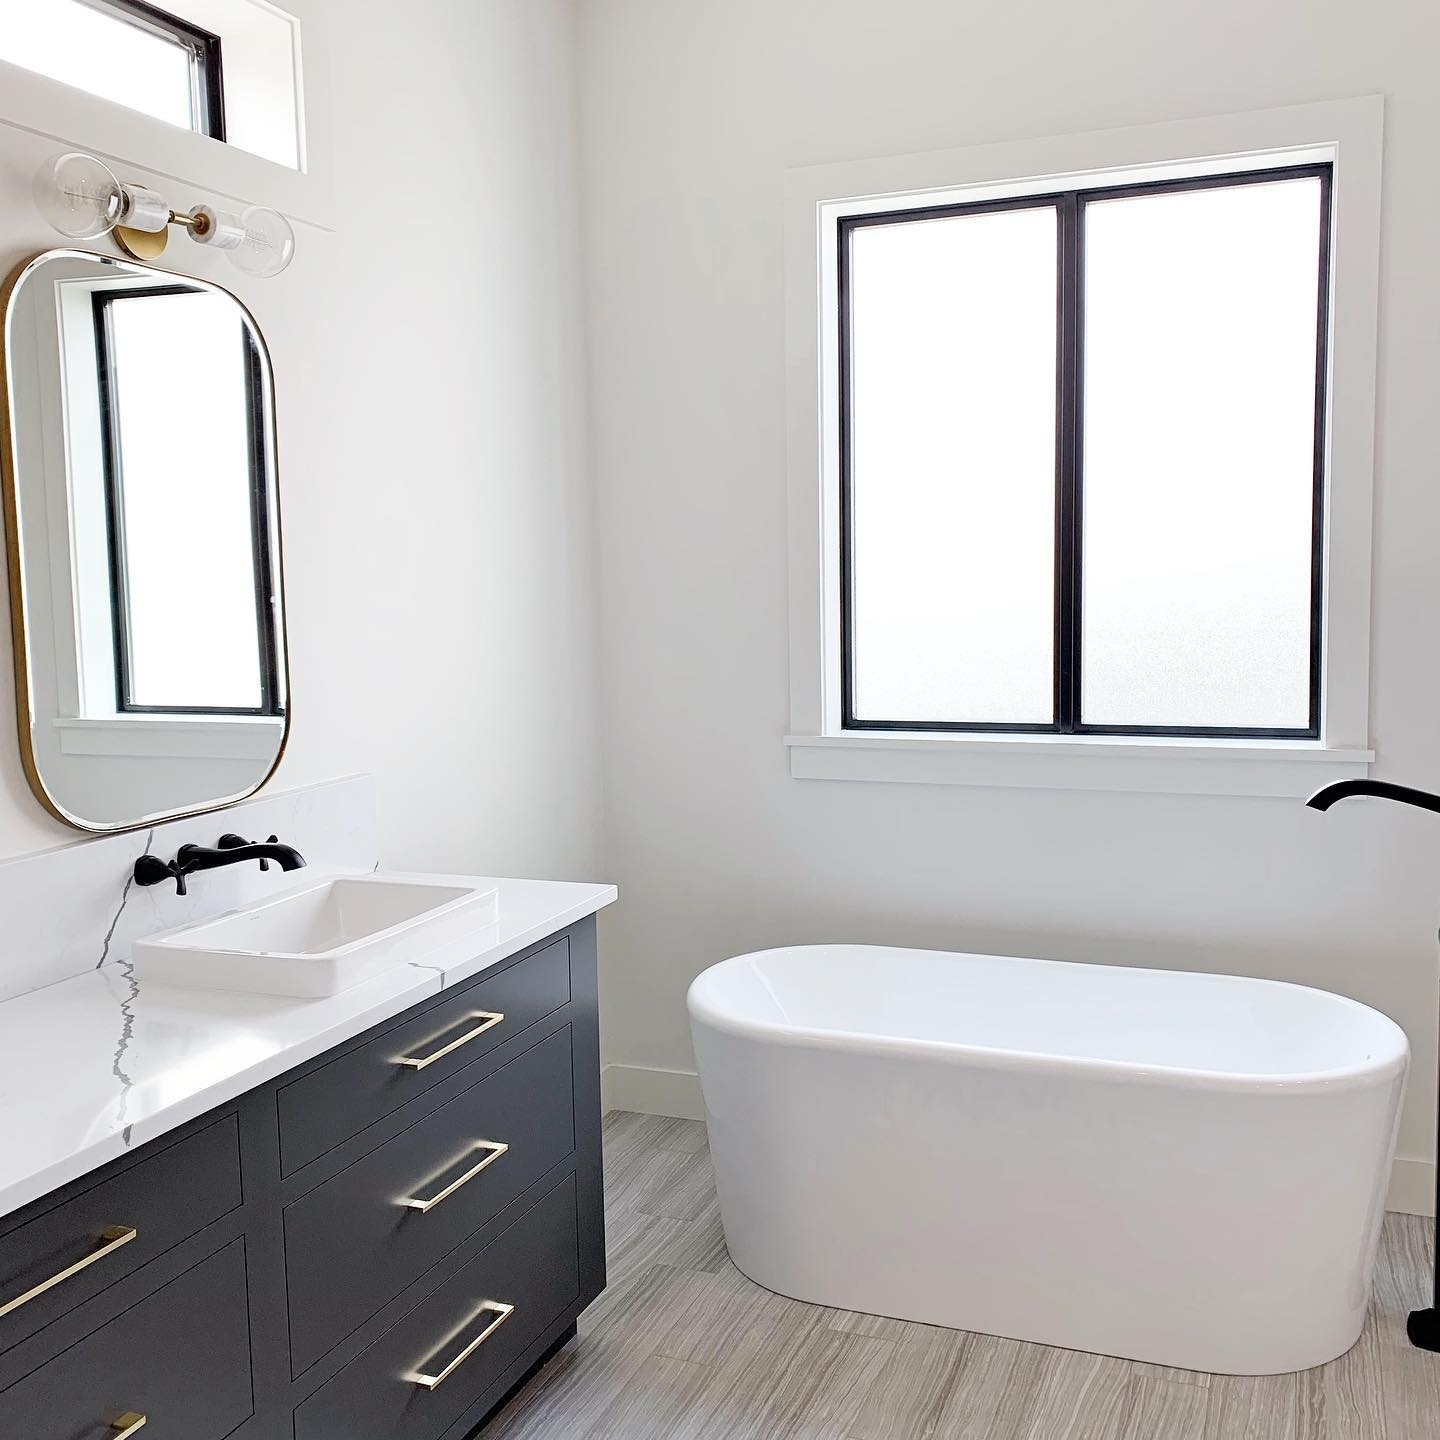 Black and white bathroom features white tub with black sliding window overhead